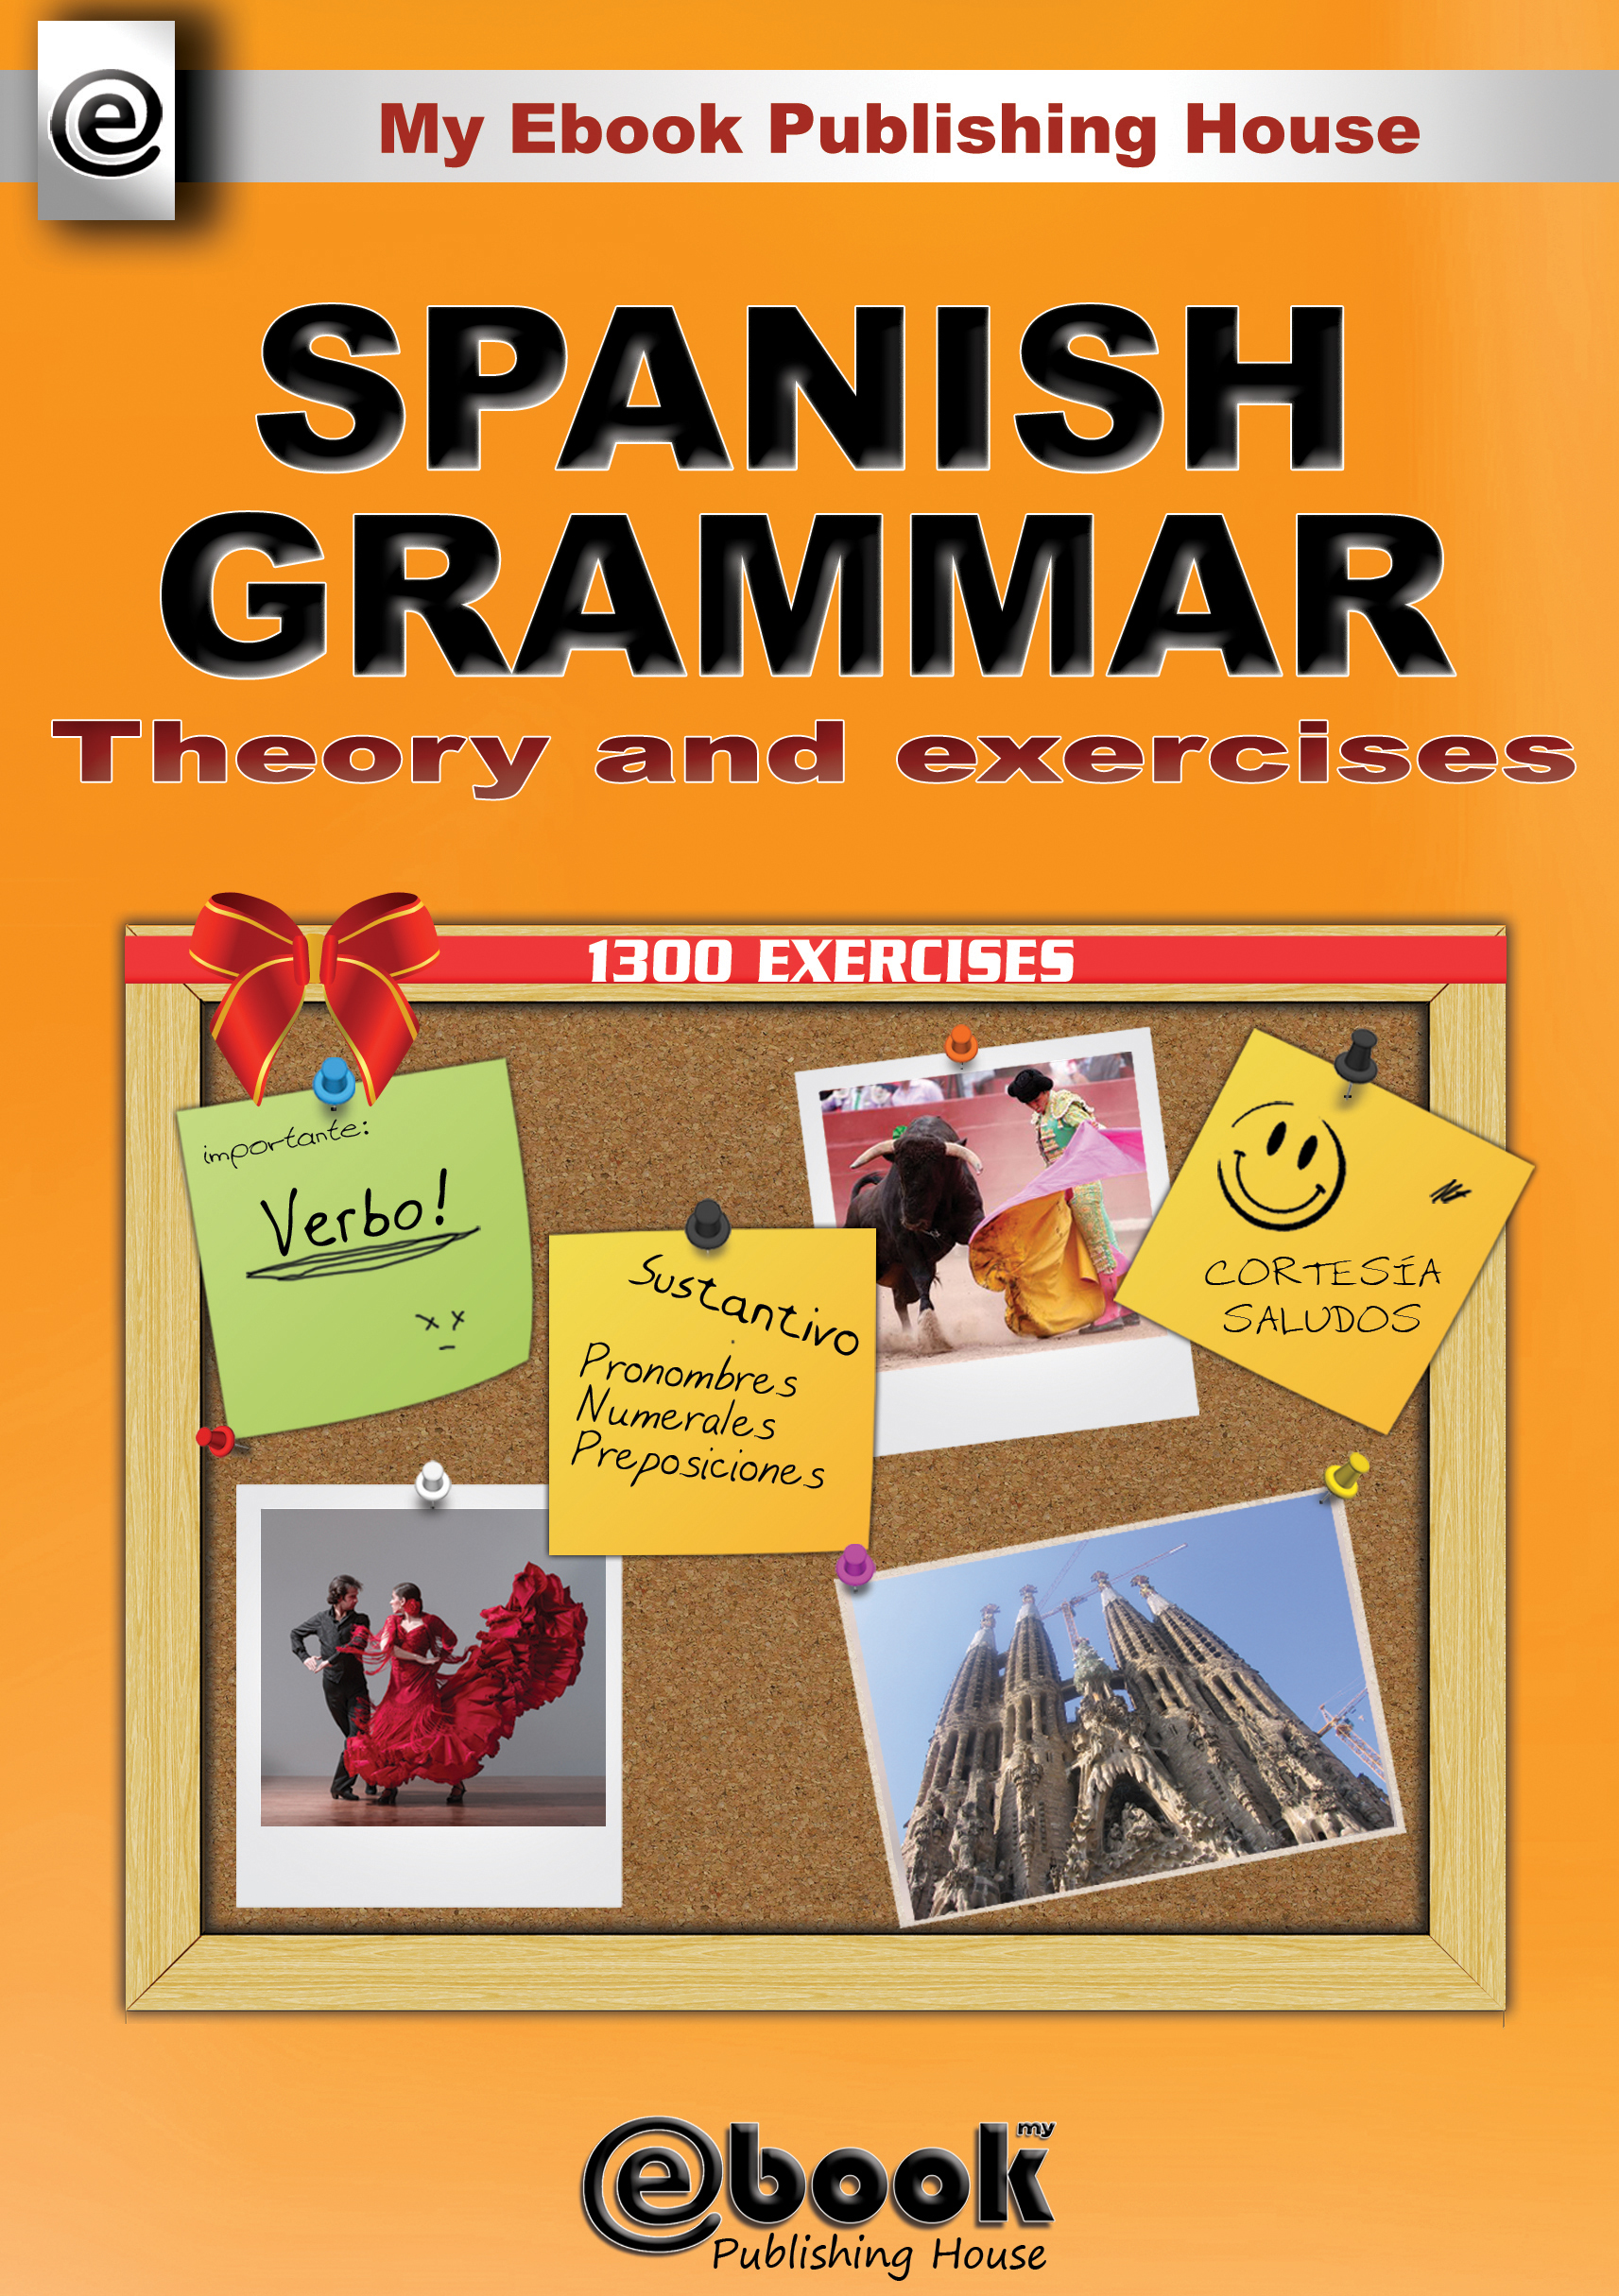 Spanish Grammar: Theory and Exercises By: My Ebook Publishing House